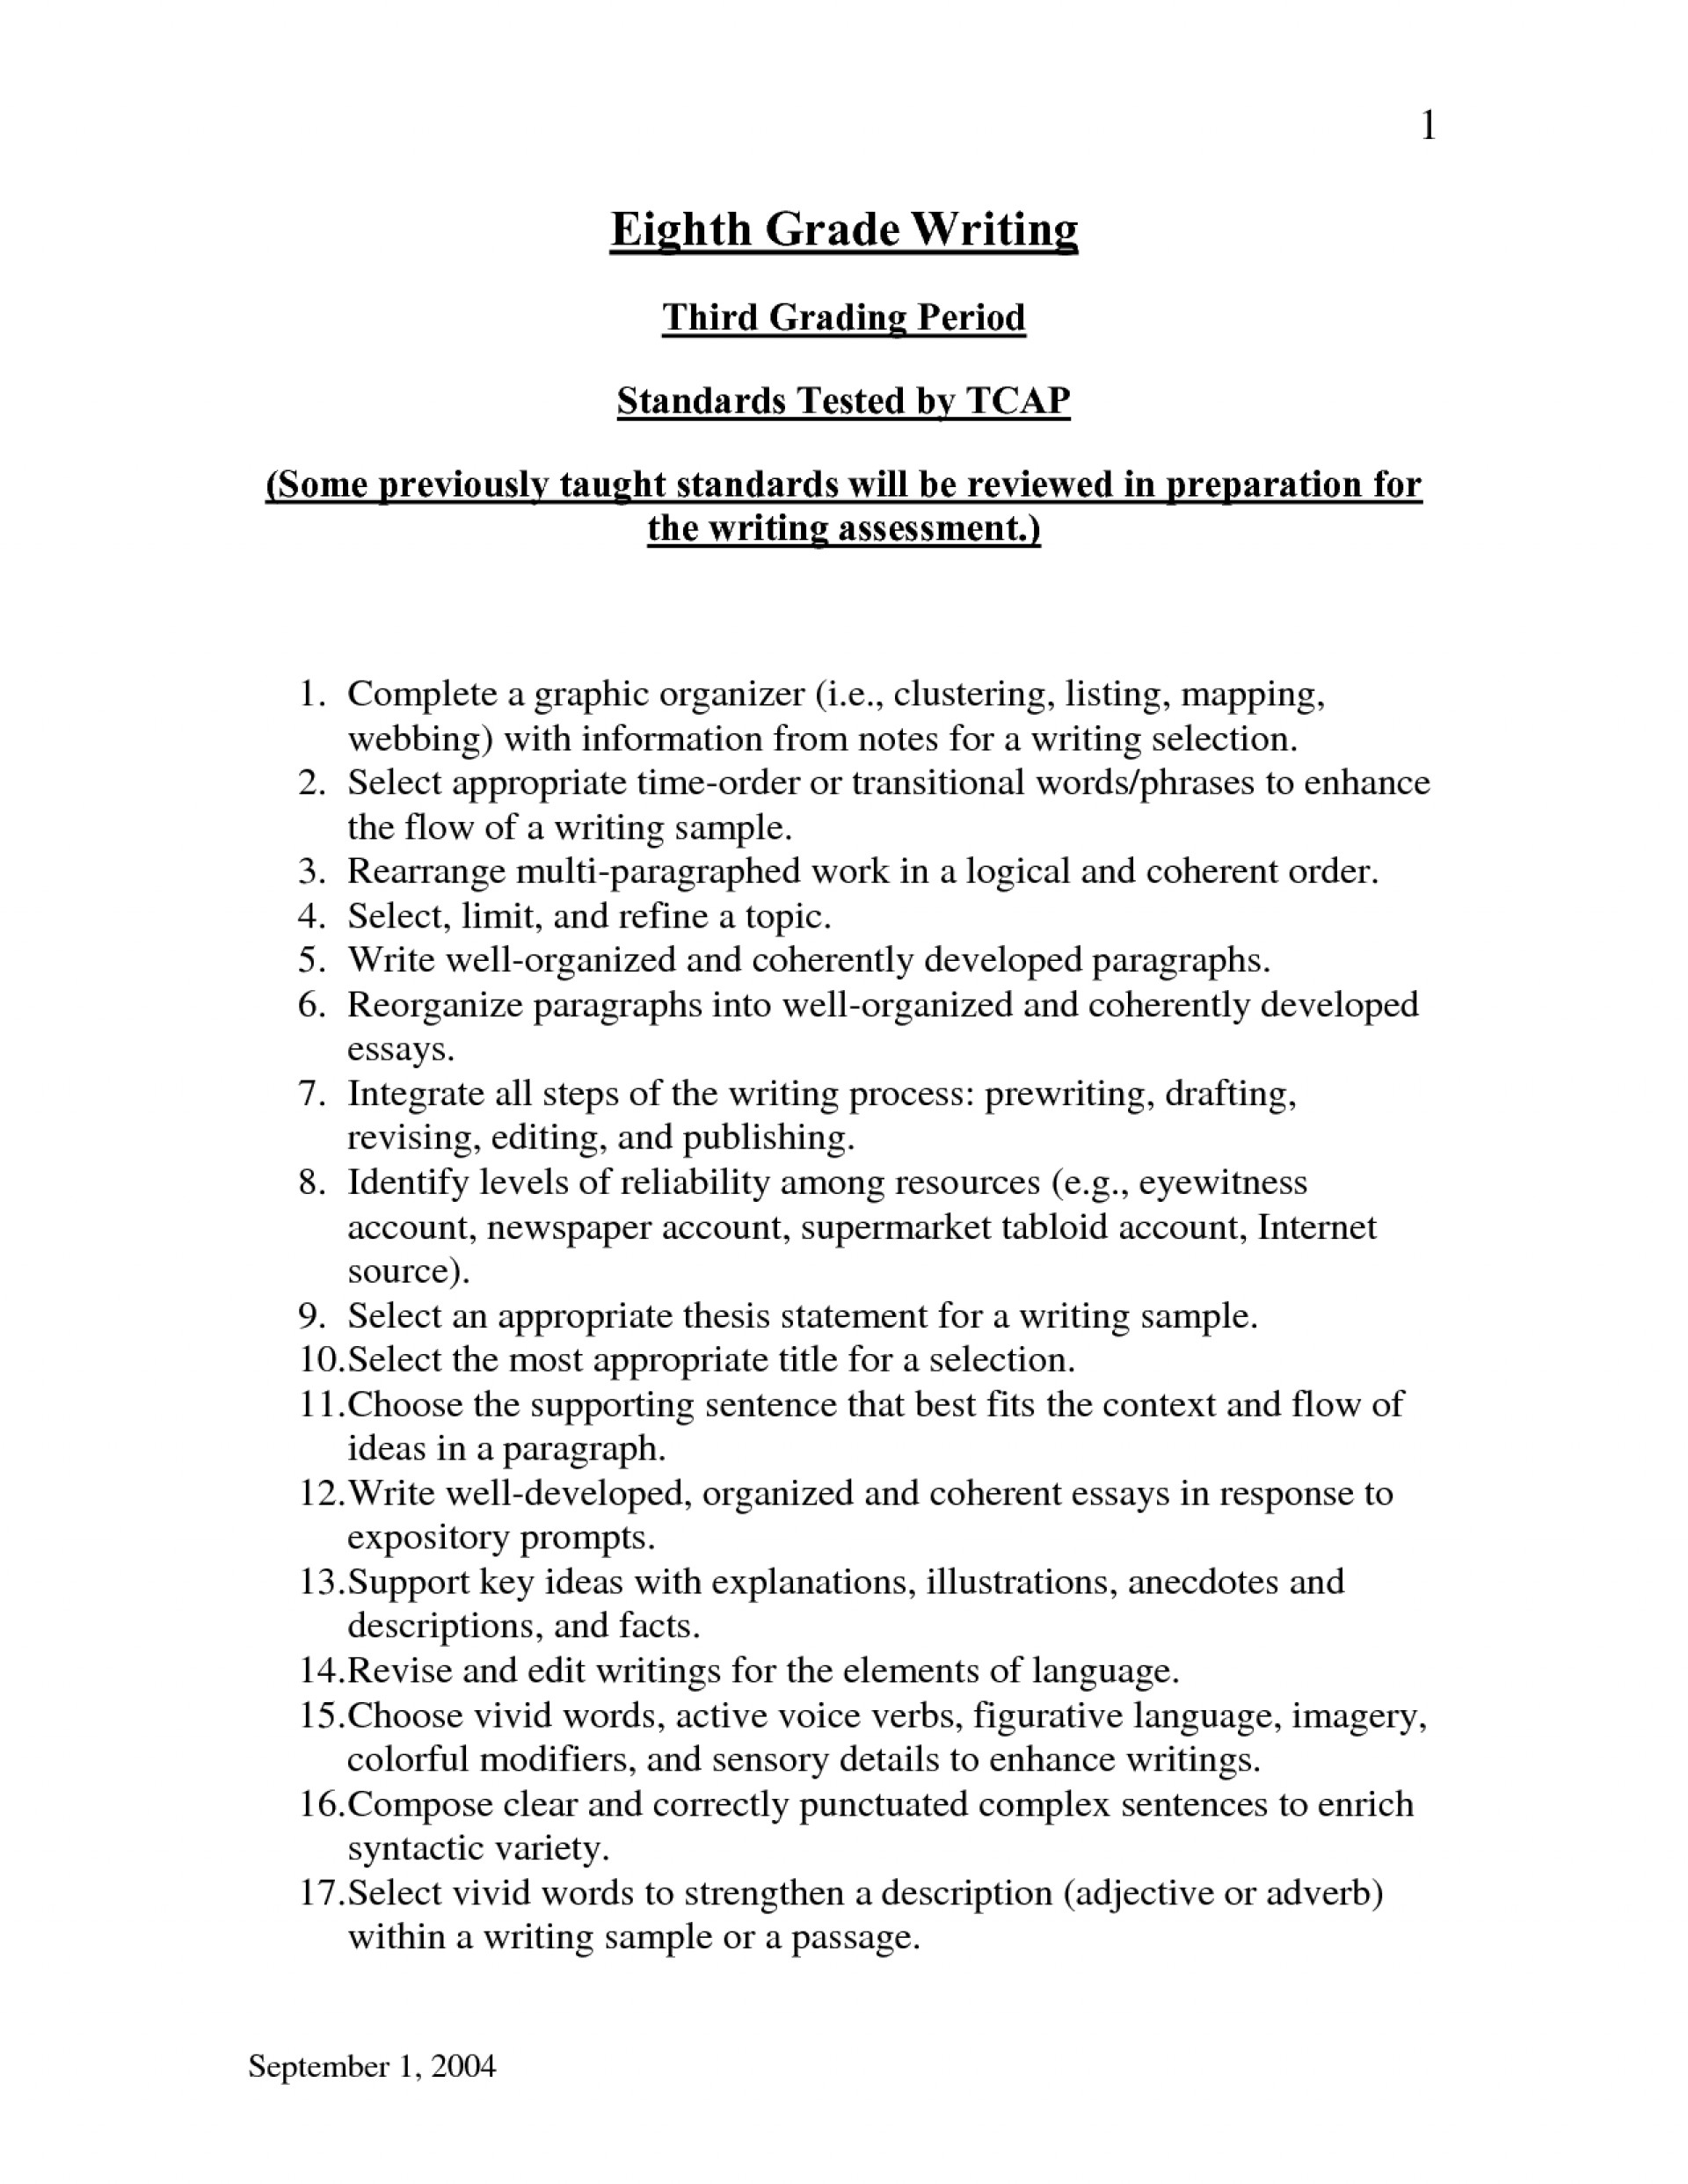 001 Expository Essay Writing Prompts For High School 1088622 Topics Awesome 4th Grade Prompt 7th 1920